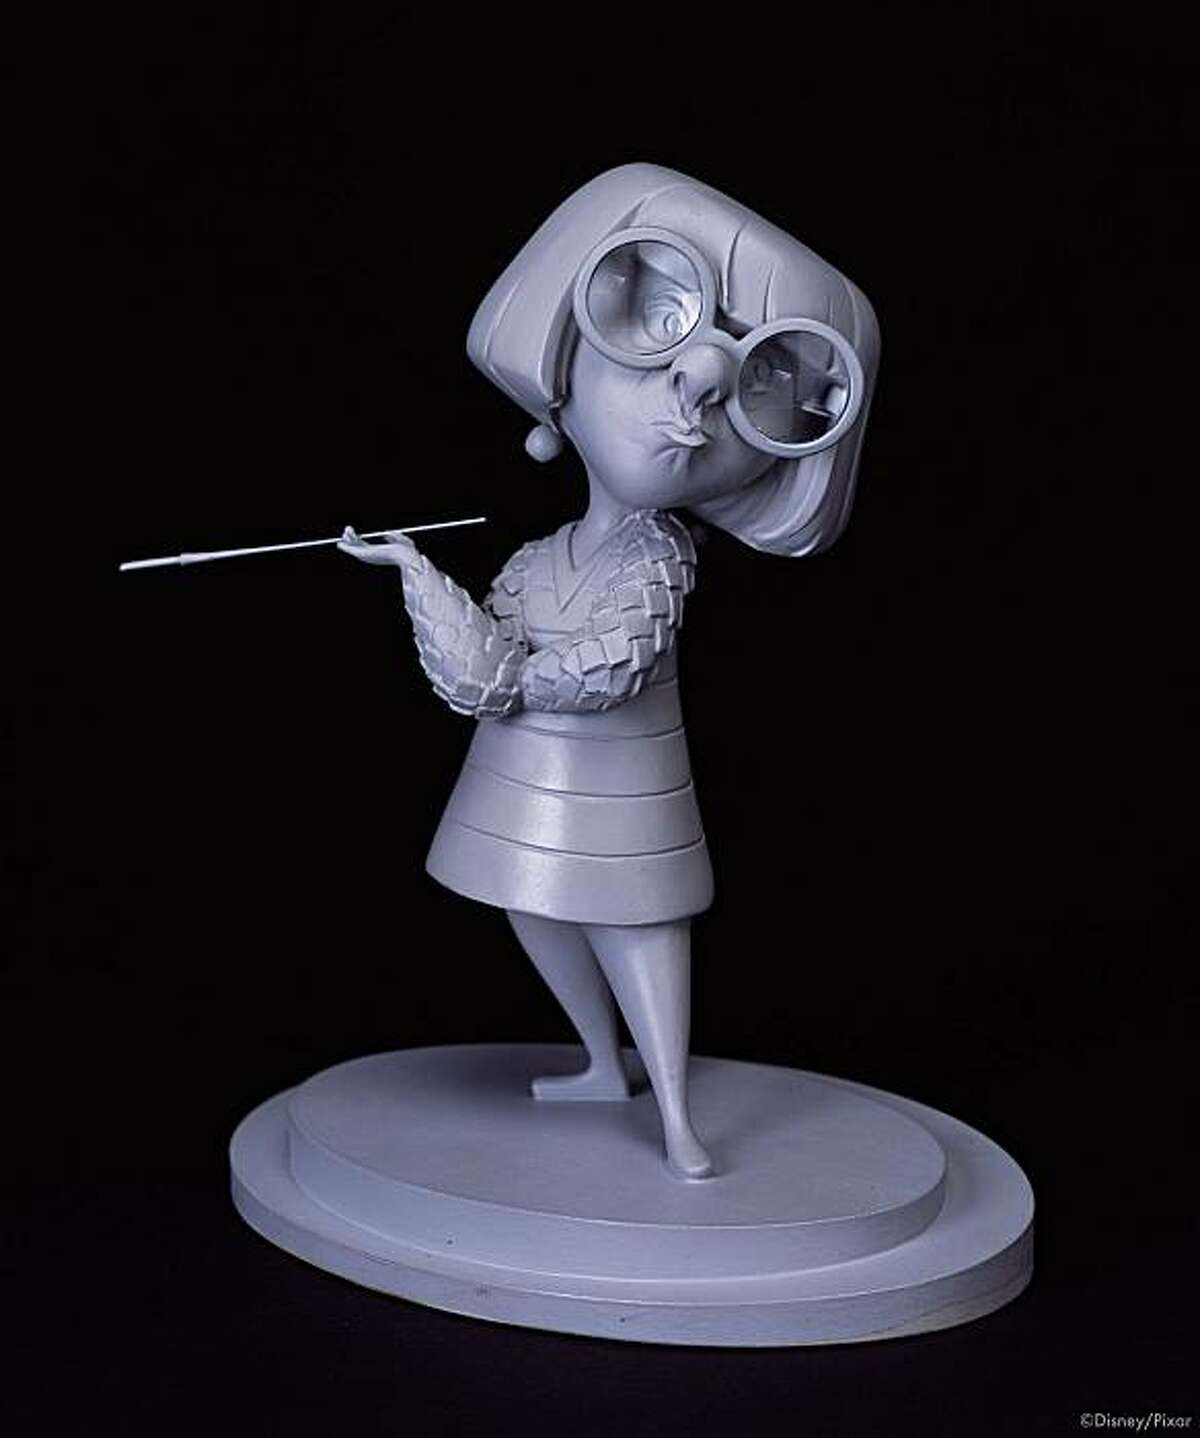 PXR1058 Kent Melton, Edna Mode (aka ?E?), The Incredibles, 2004. Cast urethane resin. ?Disney/Pixar.